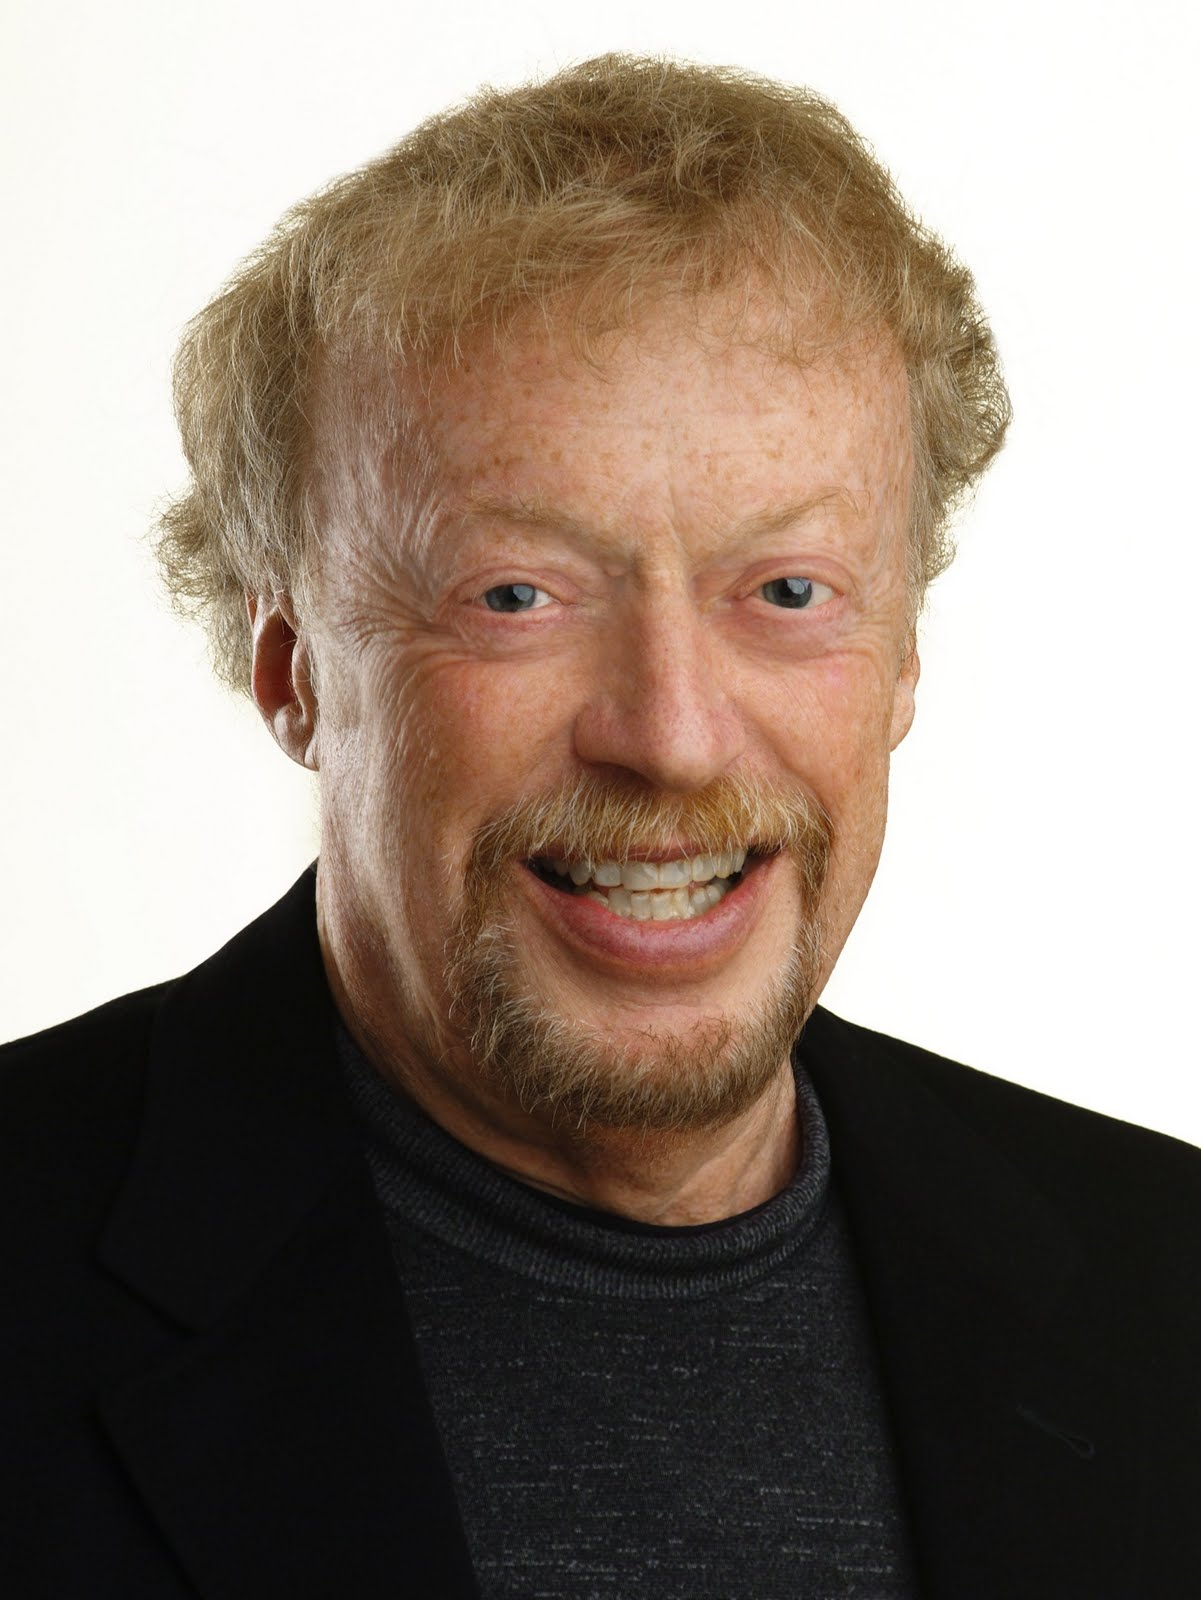 how philip h knight transformed the Get information, facts, and pictures about phil knight at encyclopediacom make research projects and school reports about phil knight easy with credible articles.